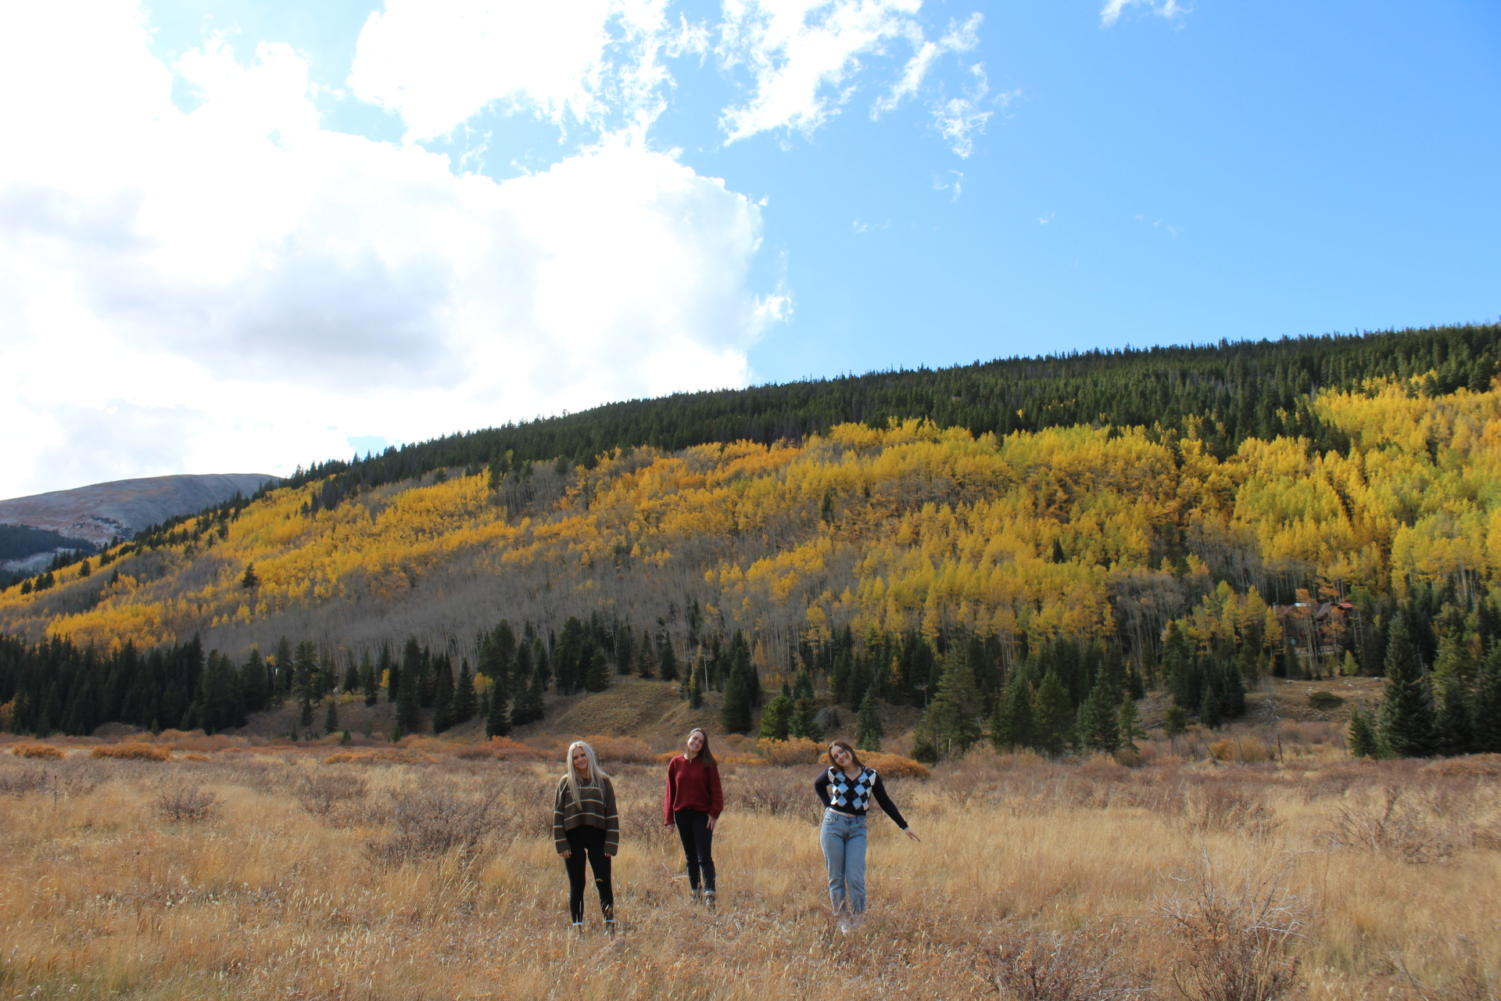 Seniors Sydney Pruitt, Megan Lockhart, and Campbell Fair pose in front of fall leaves in Breckenridge, Colorado.